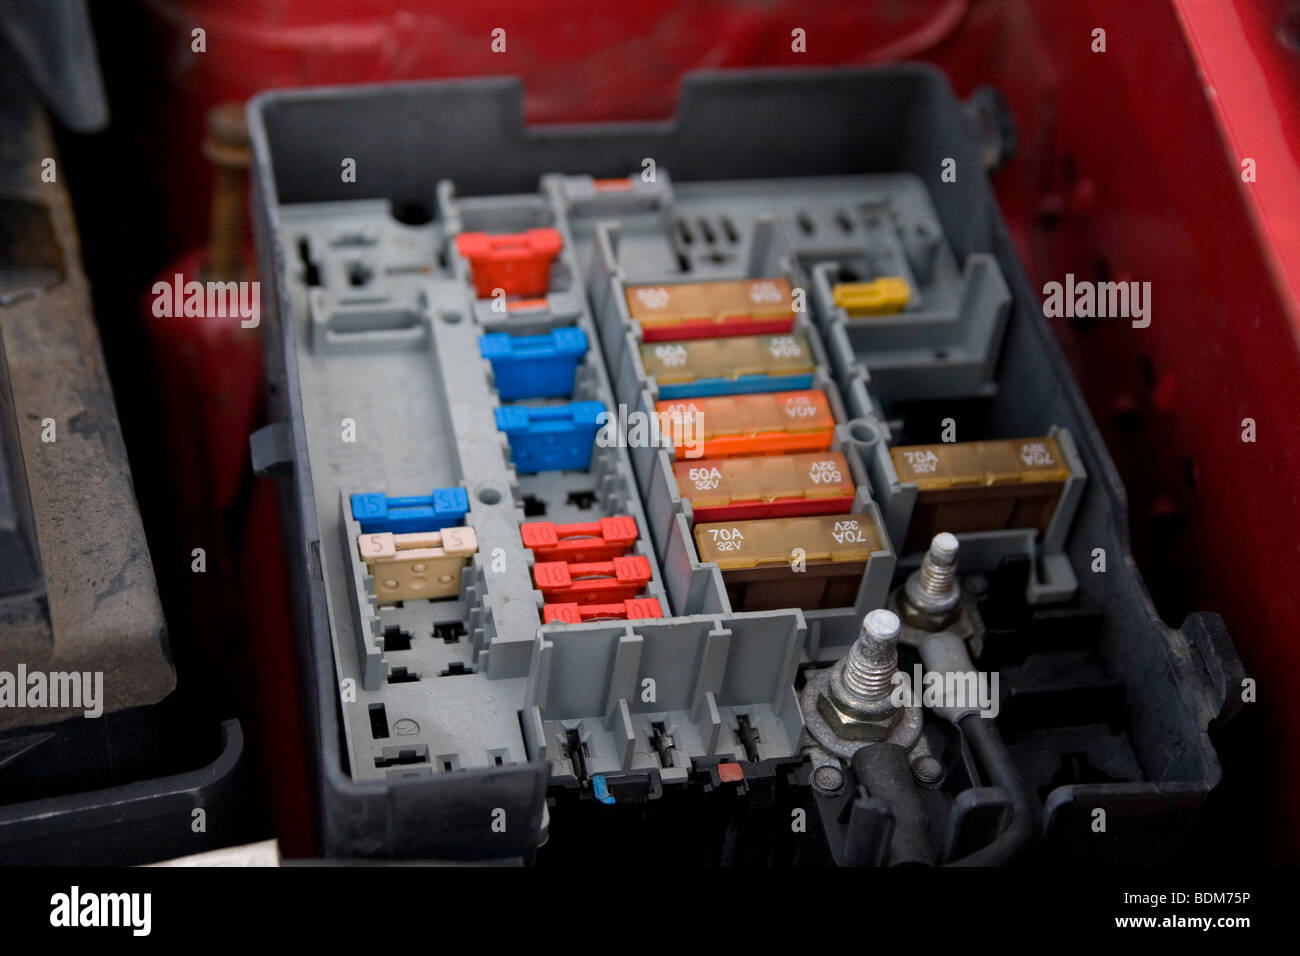 hight resolution of citroen berlingo fuse box stock photo 25645586 alamy citroen c3 fuse box citroen berlingo fuse box